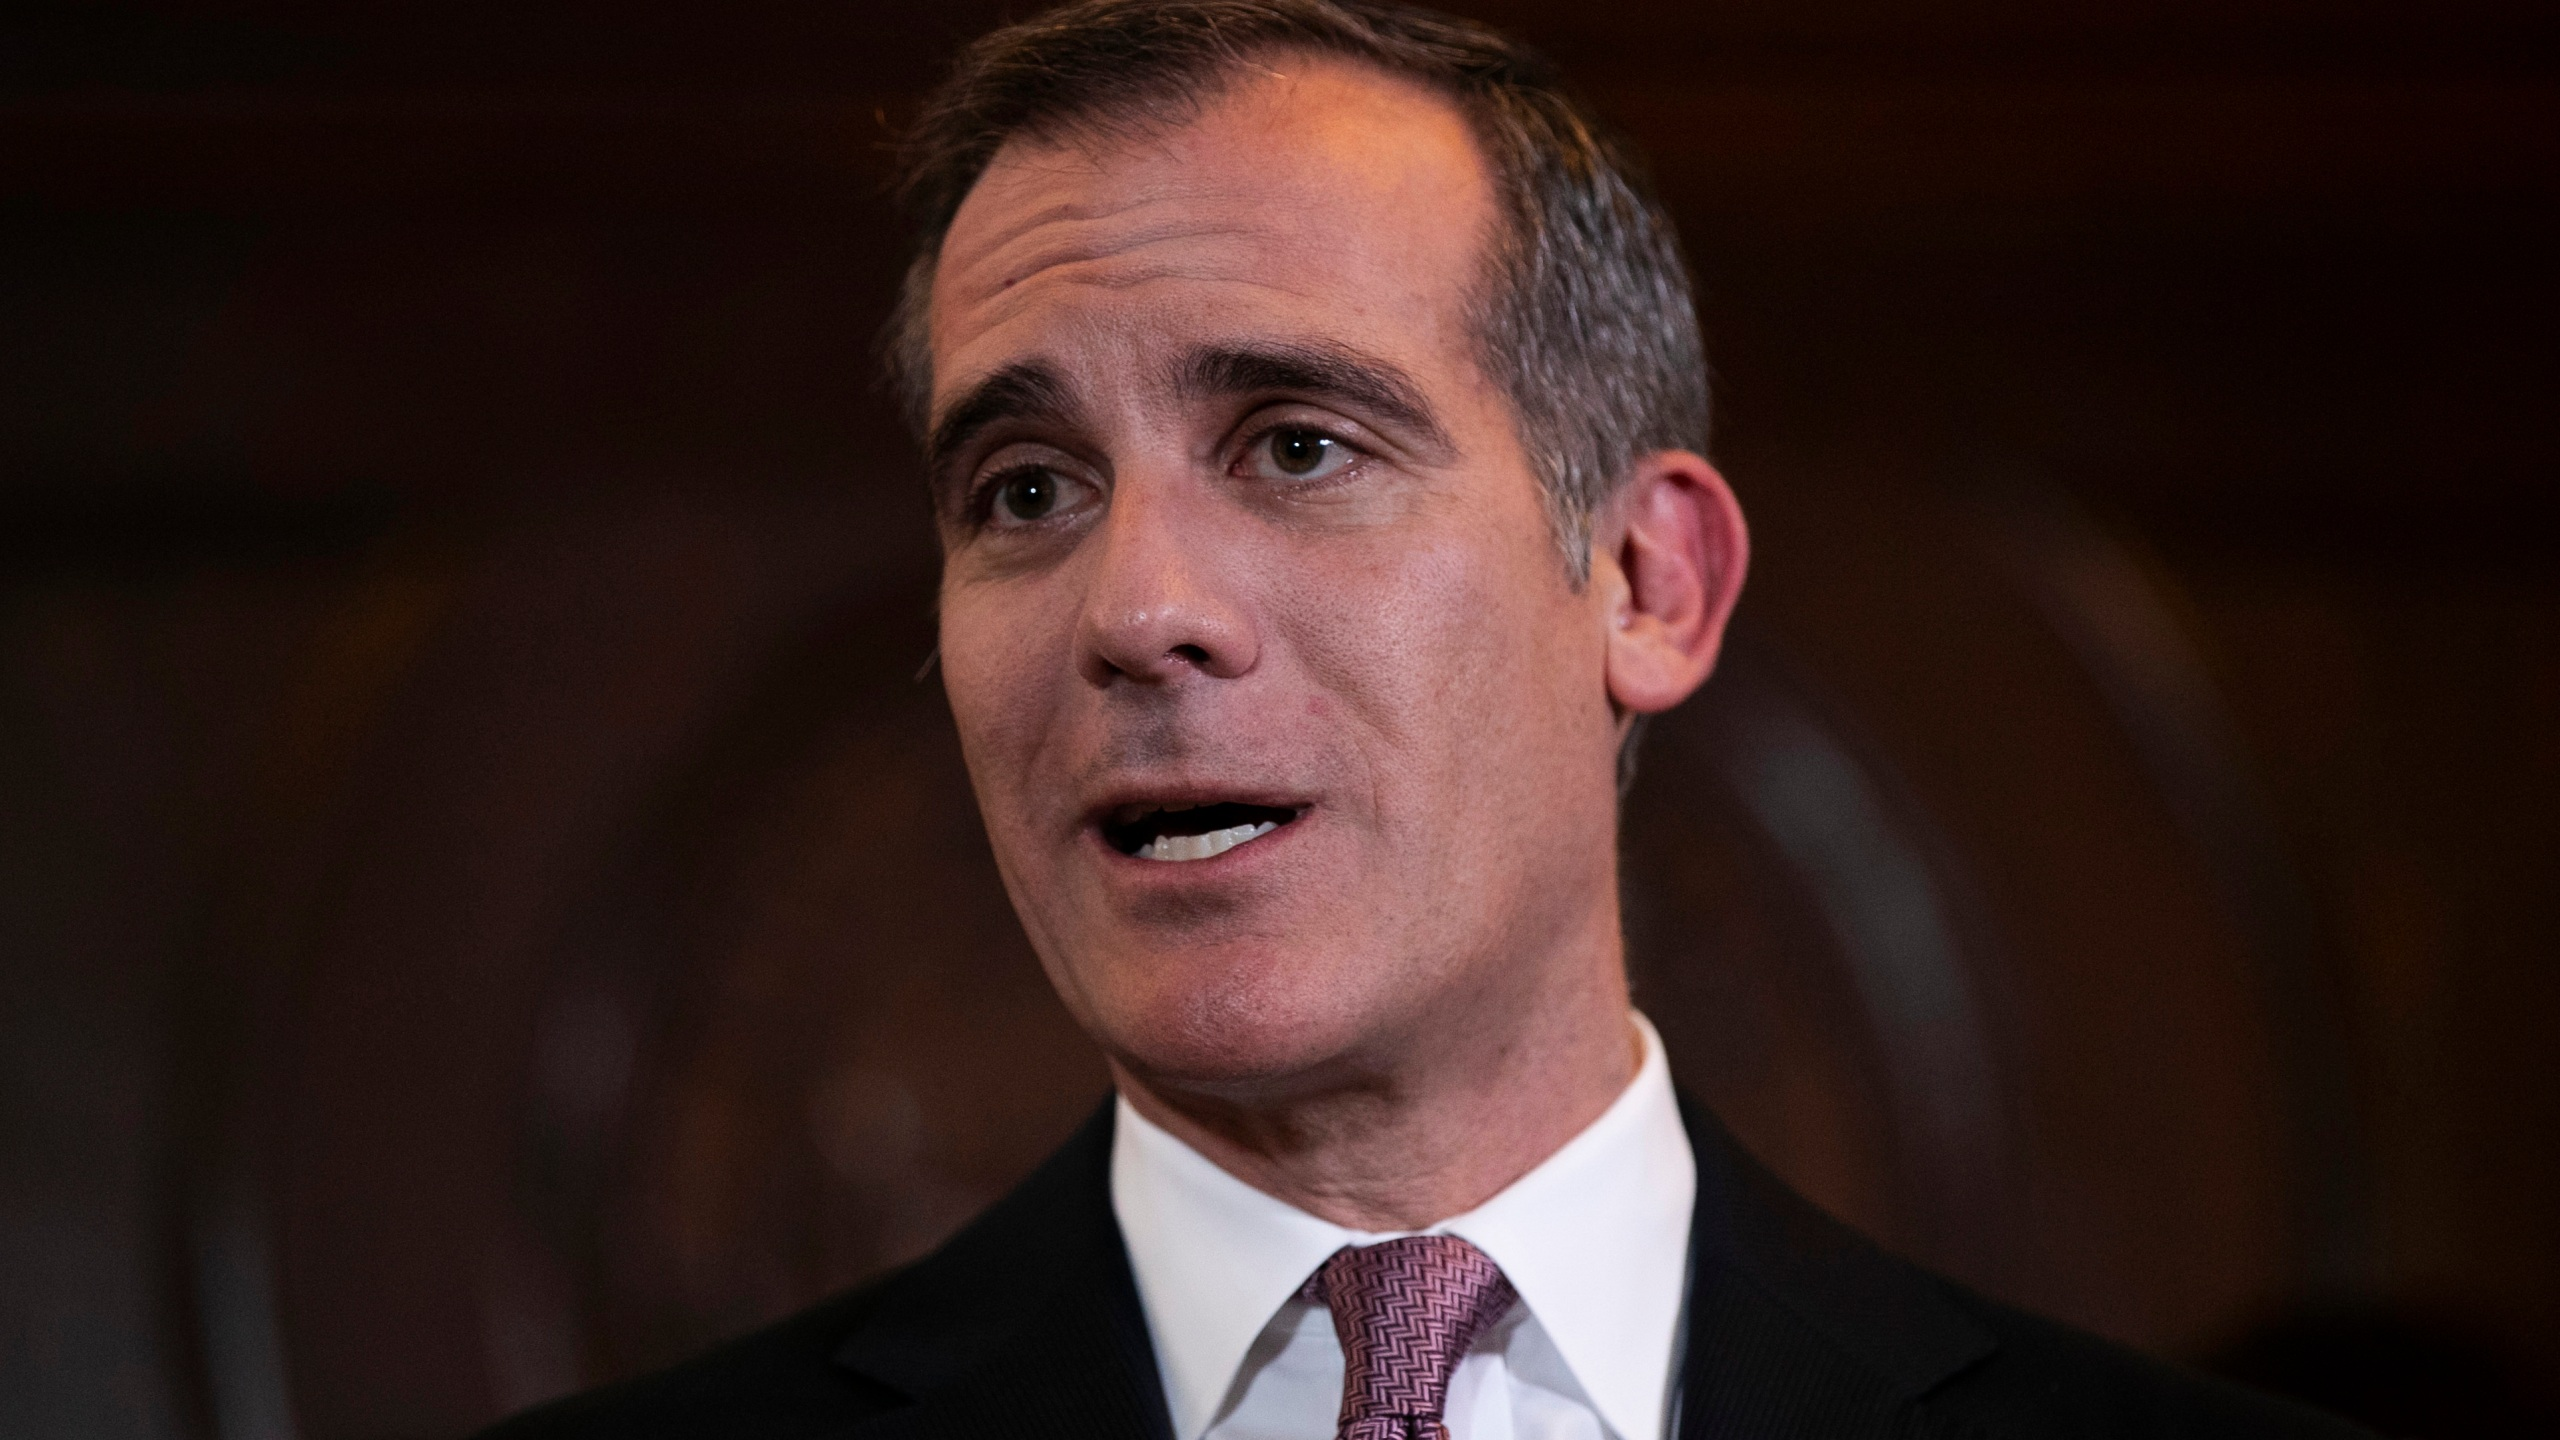 Los Angeles Mayor Eric Garcetti speaks during a news conference Tuesday, Jan. 29, 2019, in Los Angeles. (Jae C. Hong / Associated Press)